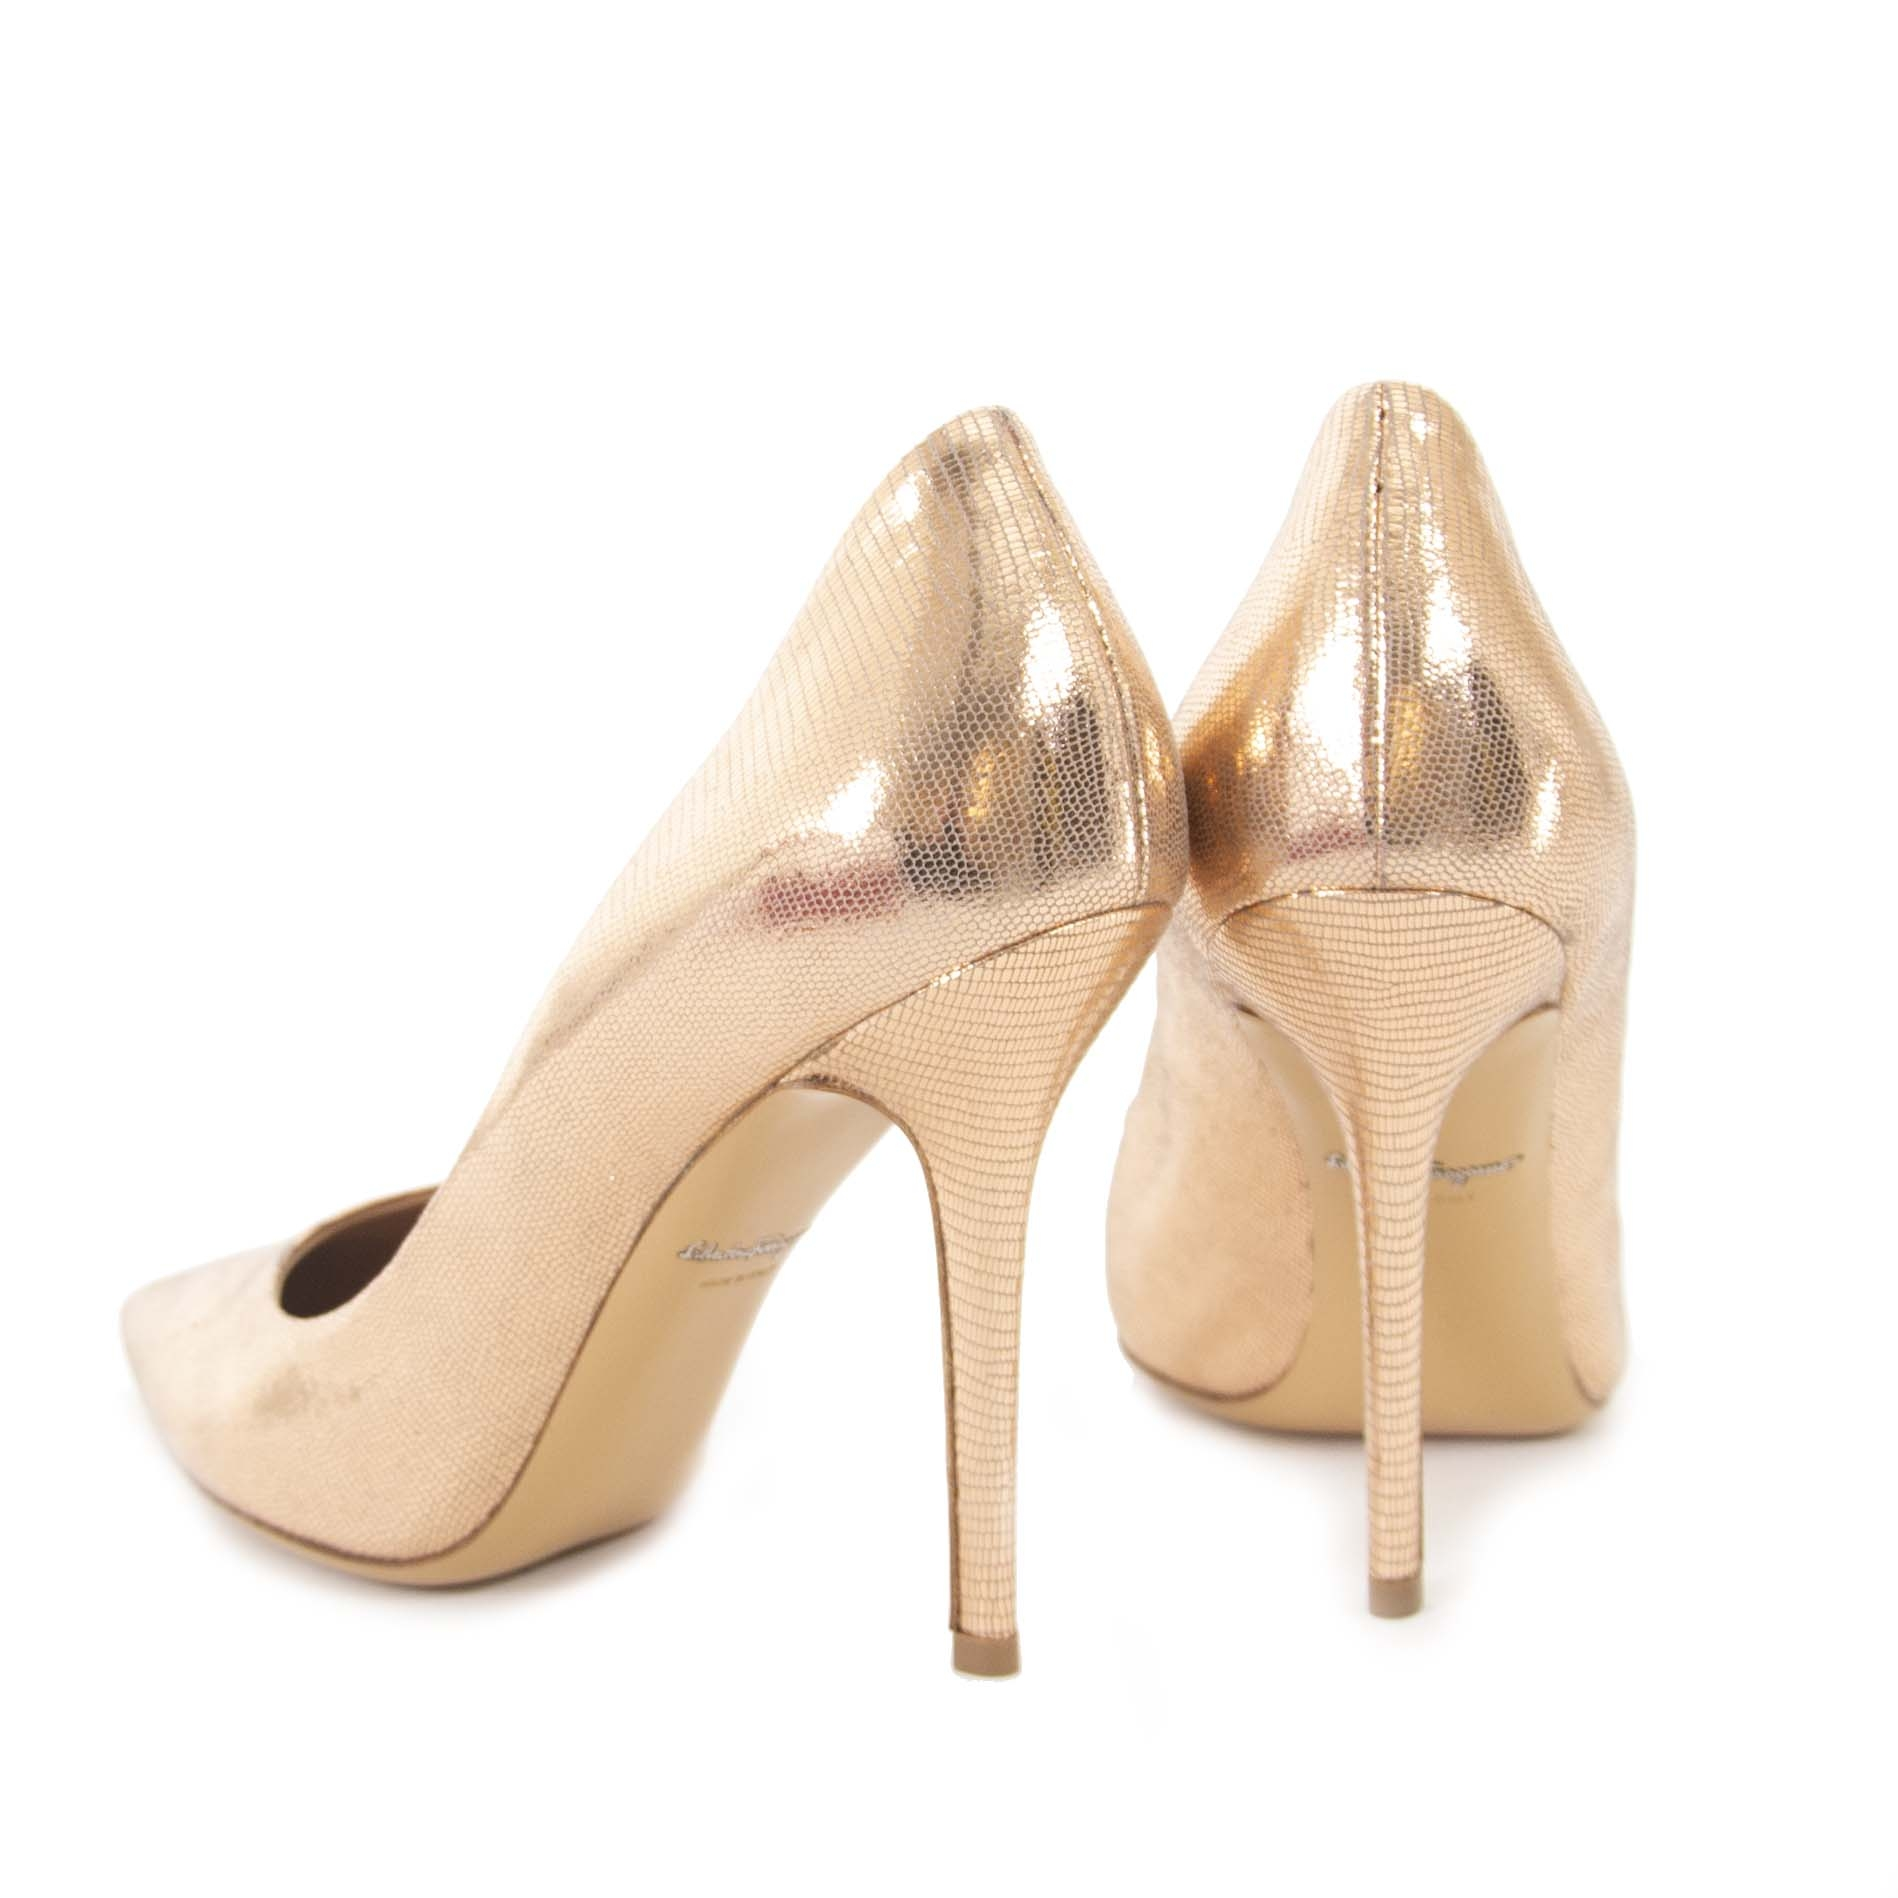 Salvatore Ferragamo Quarzo Fum Kangaroo Pumps - Size 39.5 now for sale at labellov vintage fashion webshop belgium